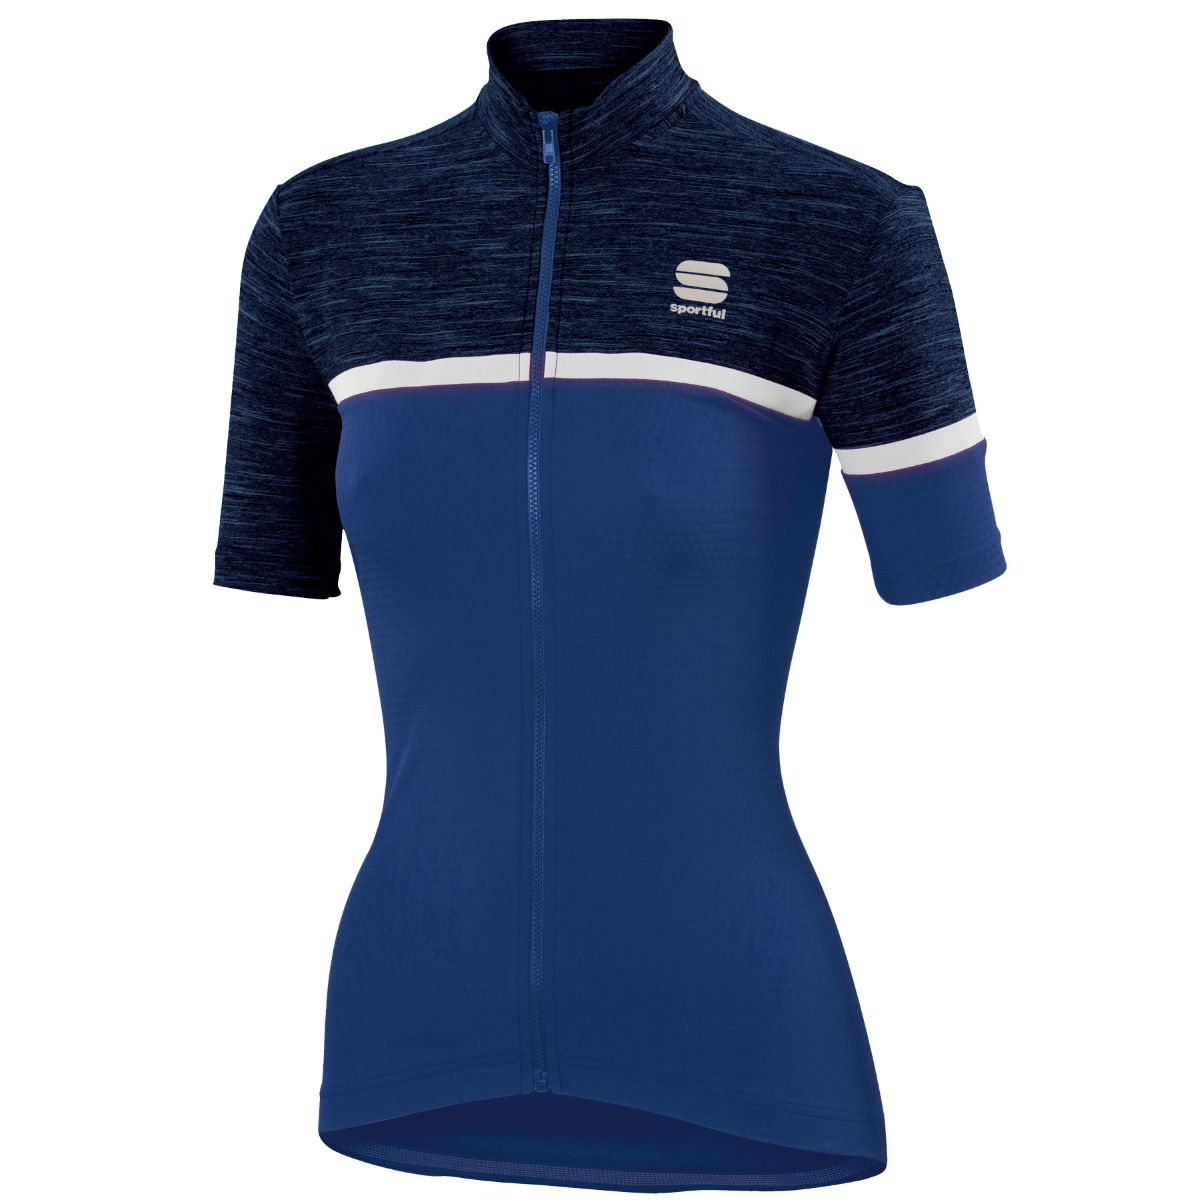 Maillot Femme Sportful Giara - L Blue Twilight/White Maillots